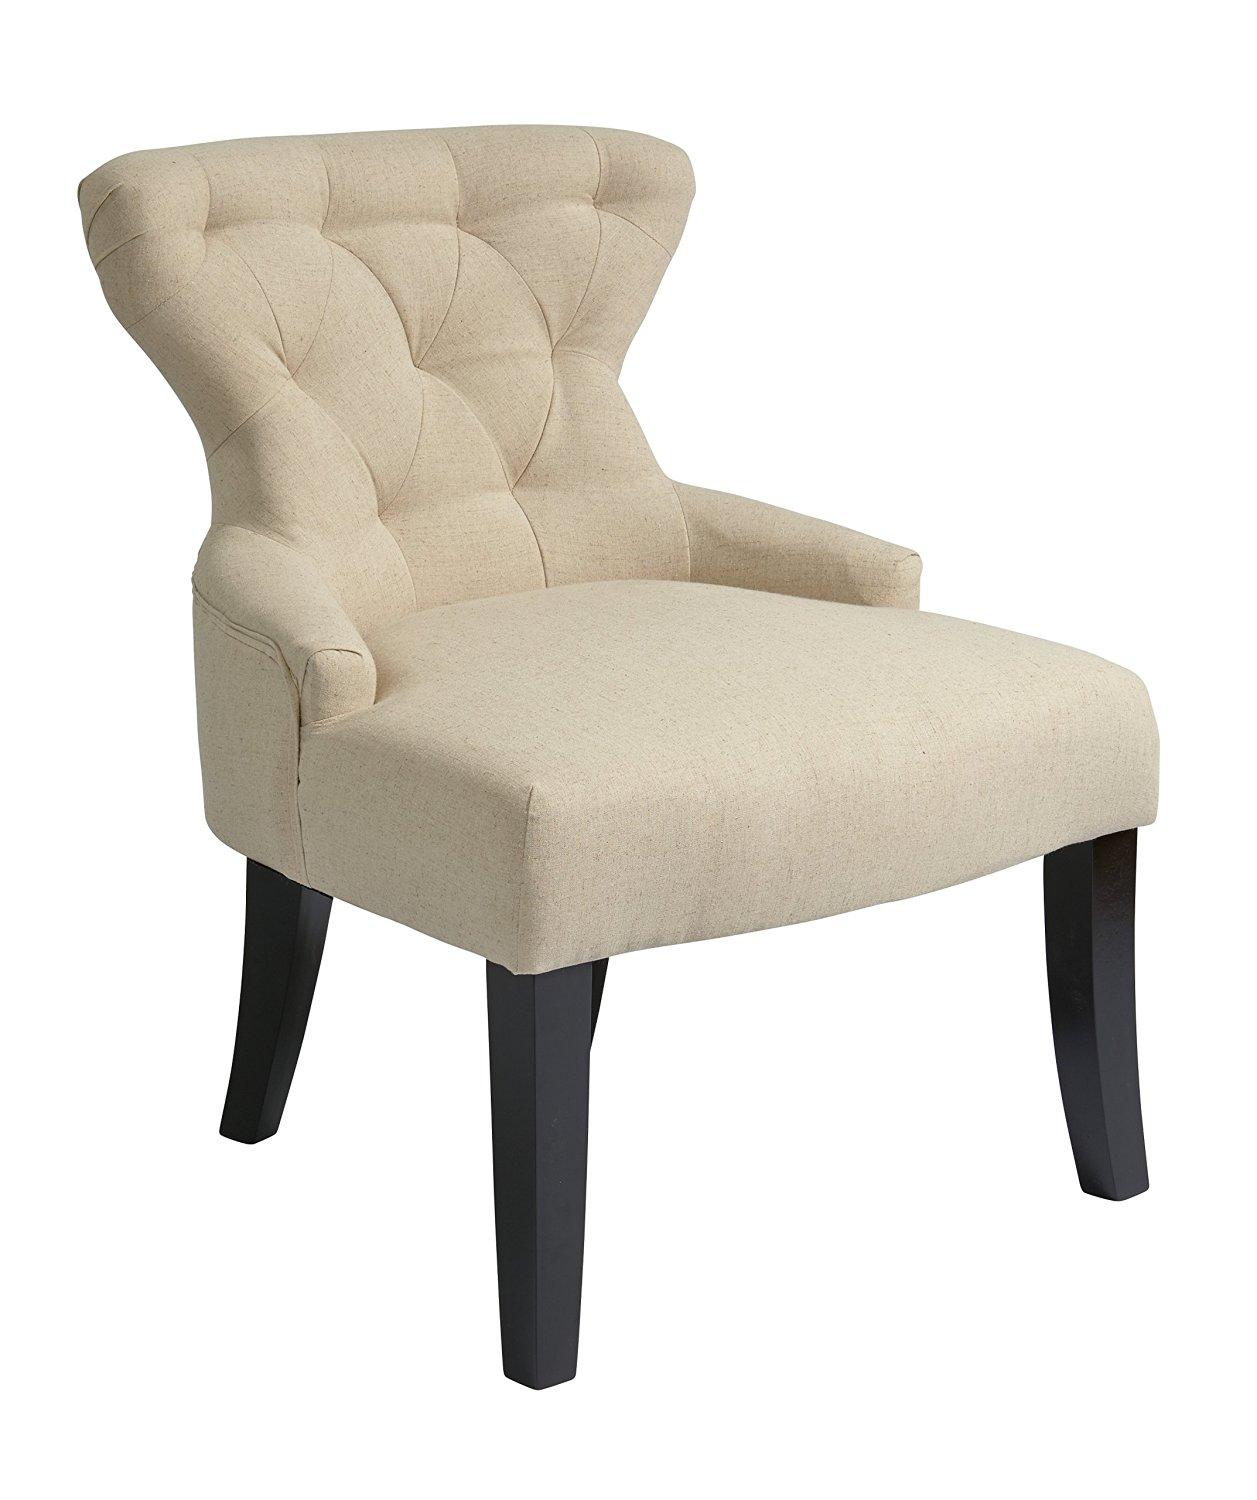 black and white hourglass accent chair